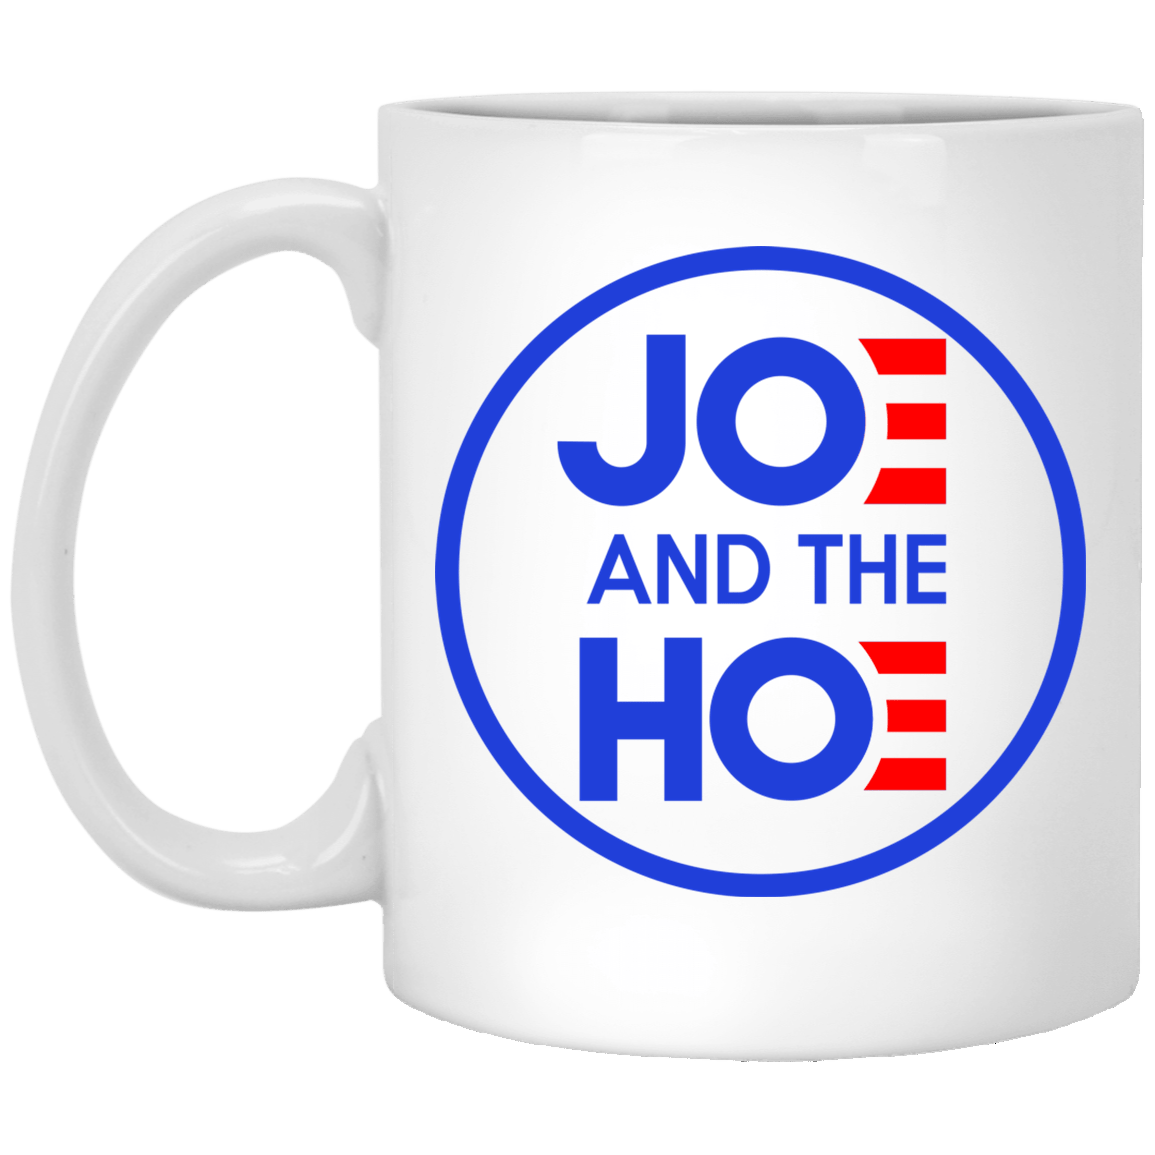 Jo And The Ho Joe And The Hoe Mug 1005-9786-88767799-47417 - Tee Ript